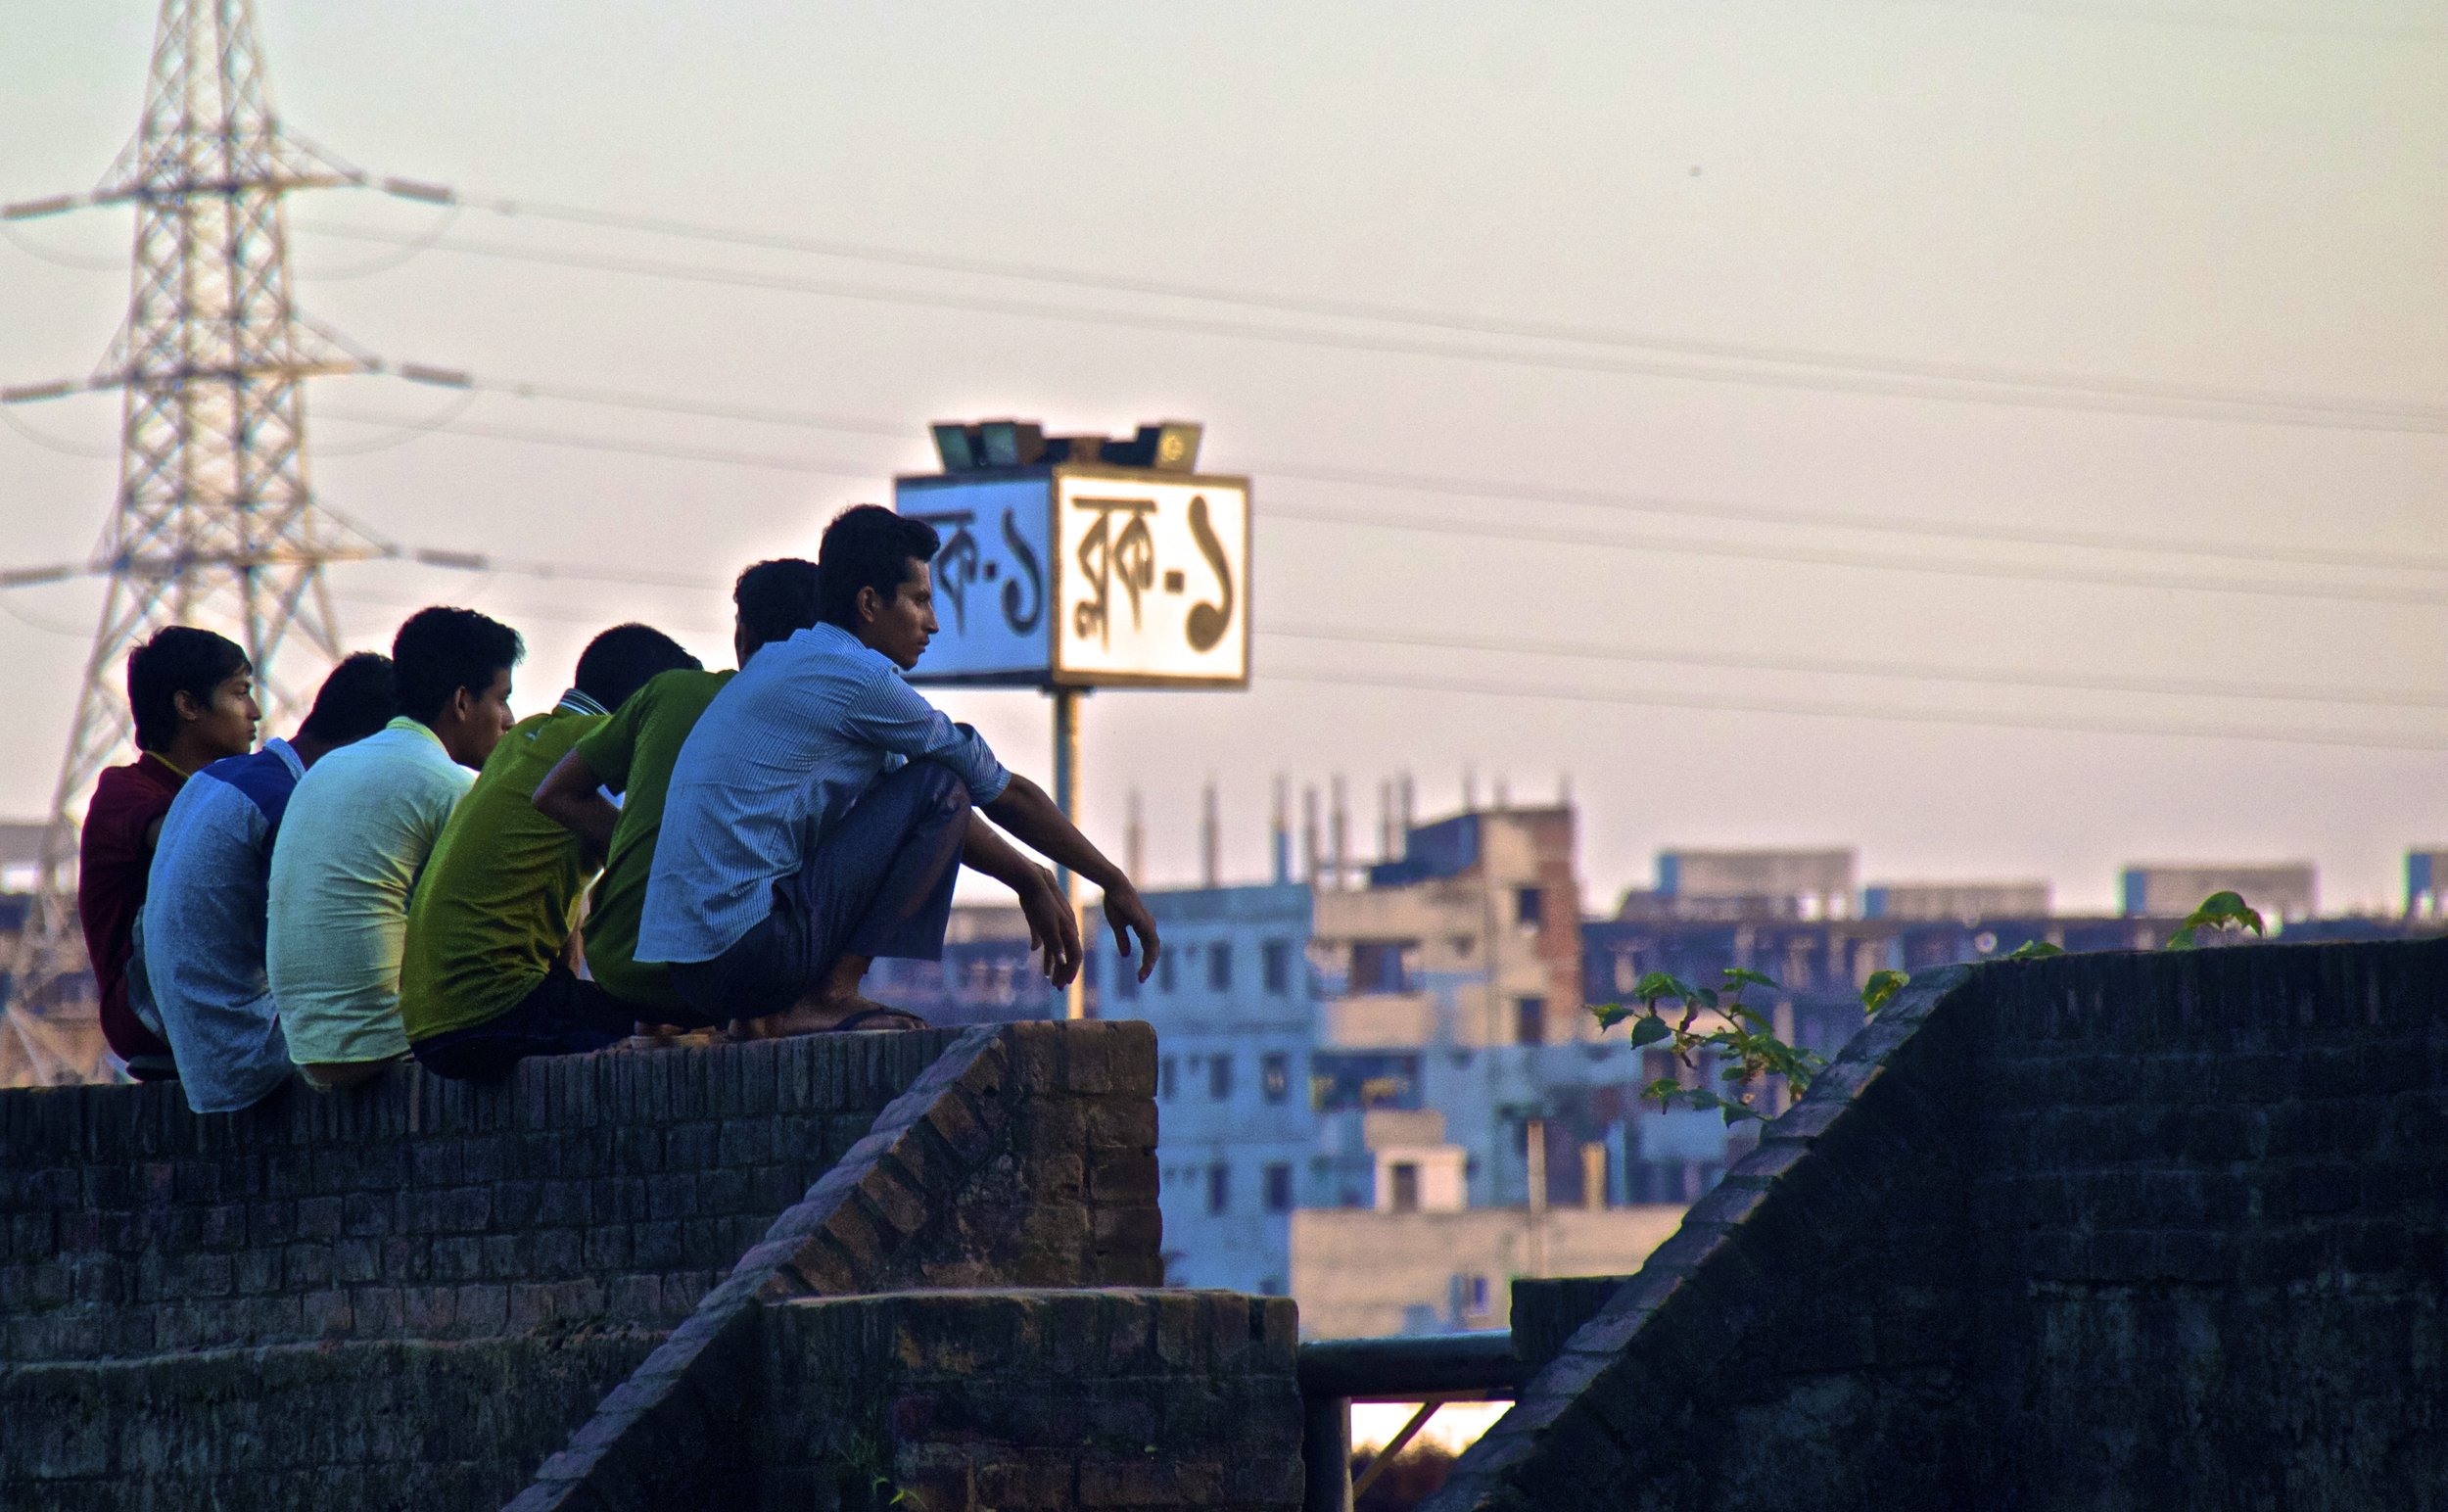 rayer bazar dhaka slums sunset 2.jpg